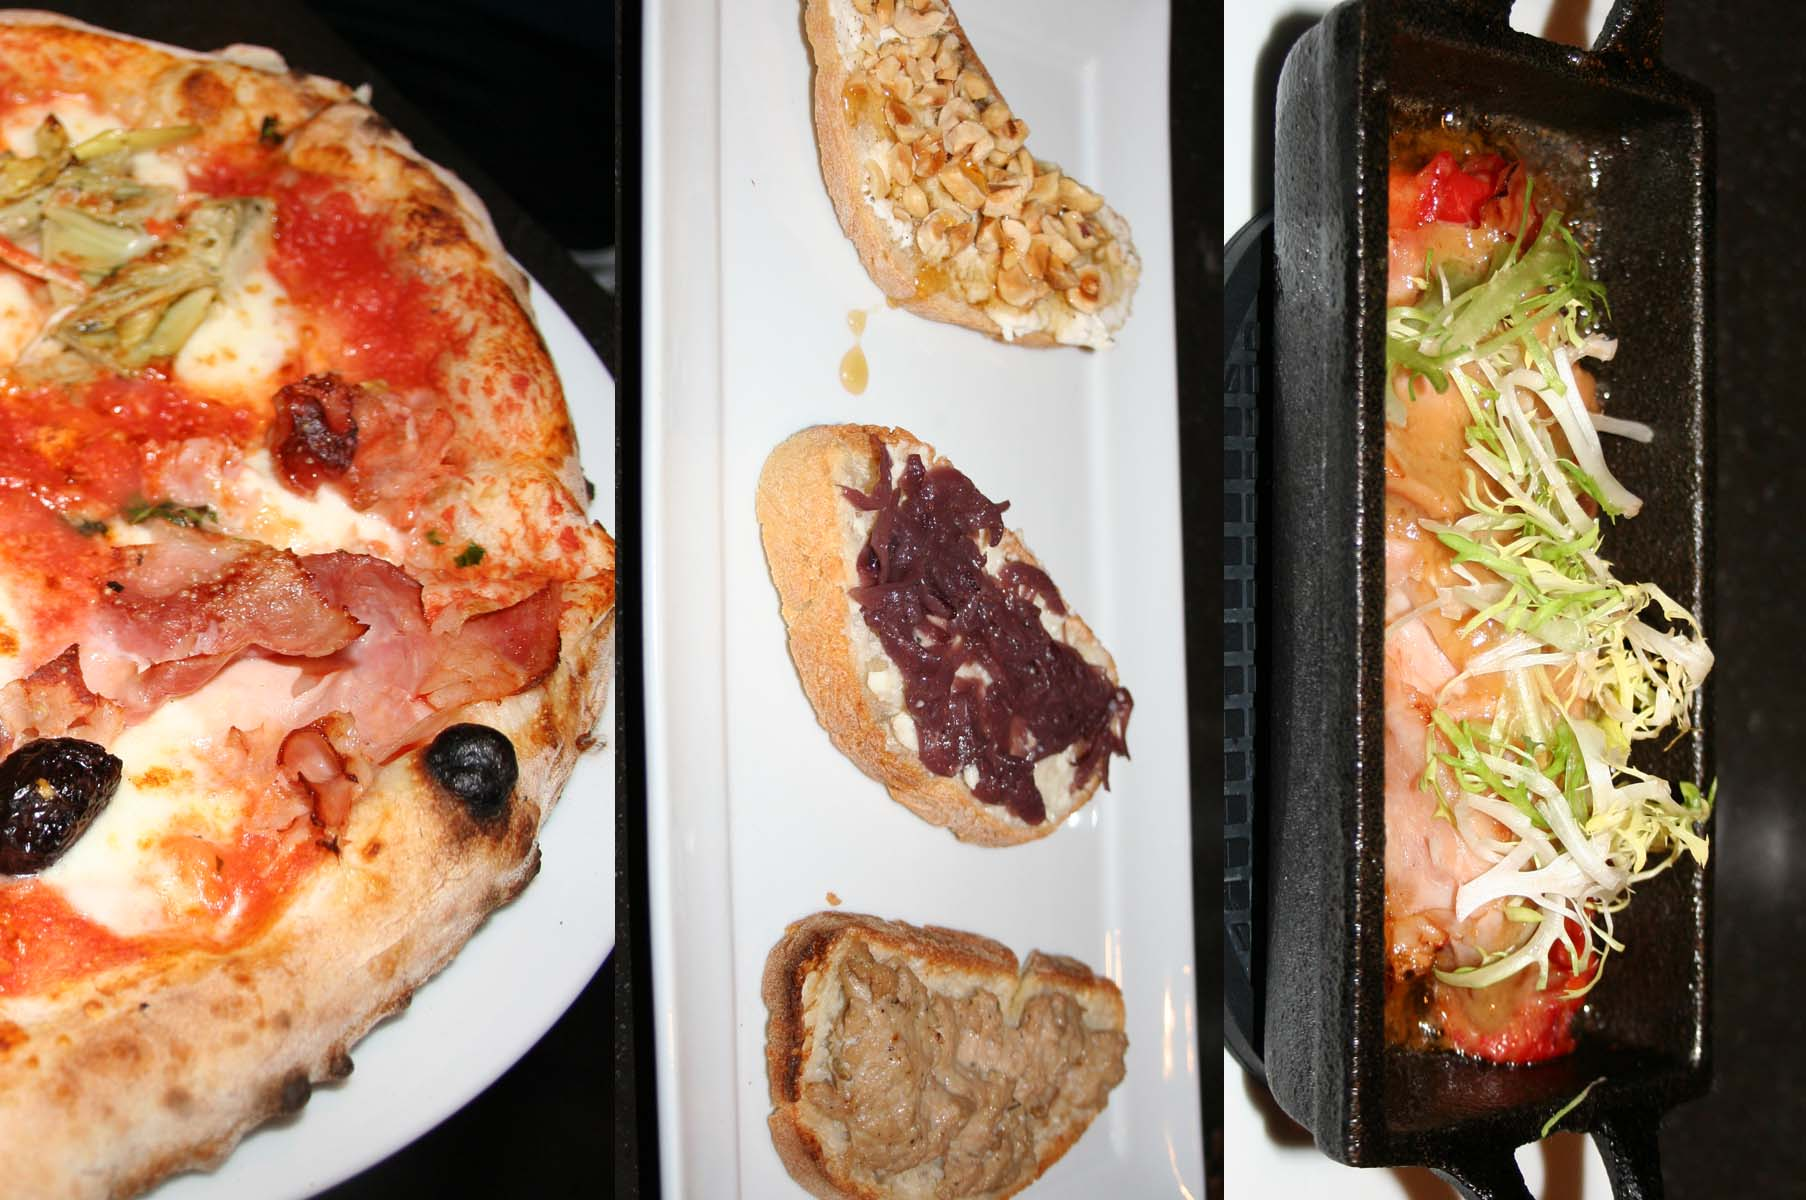 Starters include wood-oven pizzas like the quattro stagioni (left), or warm appetizers including crostini piemontesi (center) or peperoni all'astigiana (right). (Photos: Mark Heckathorn/DC on Heels)